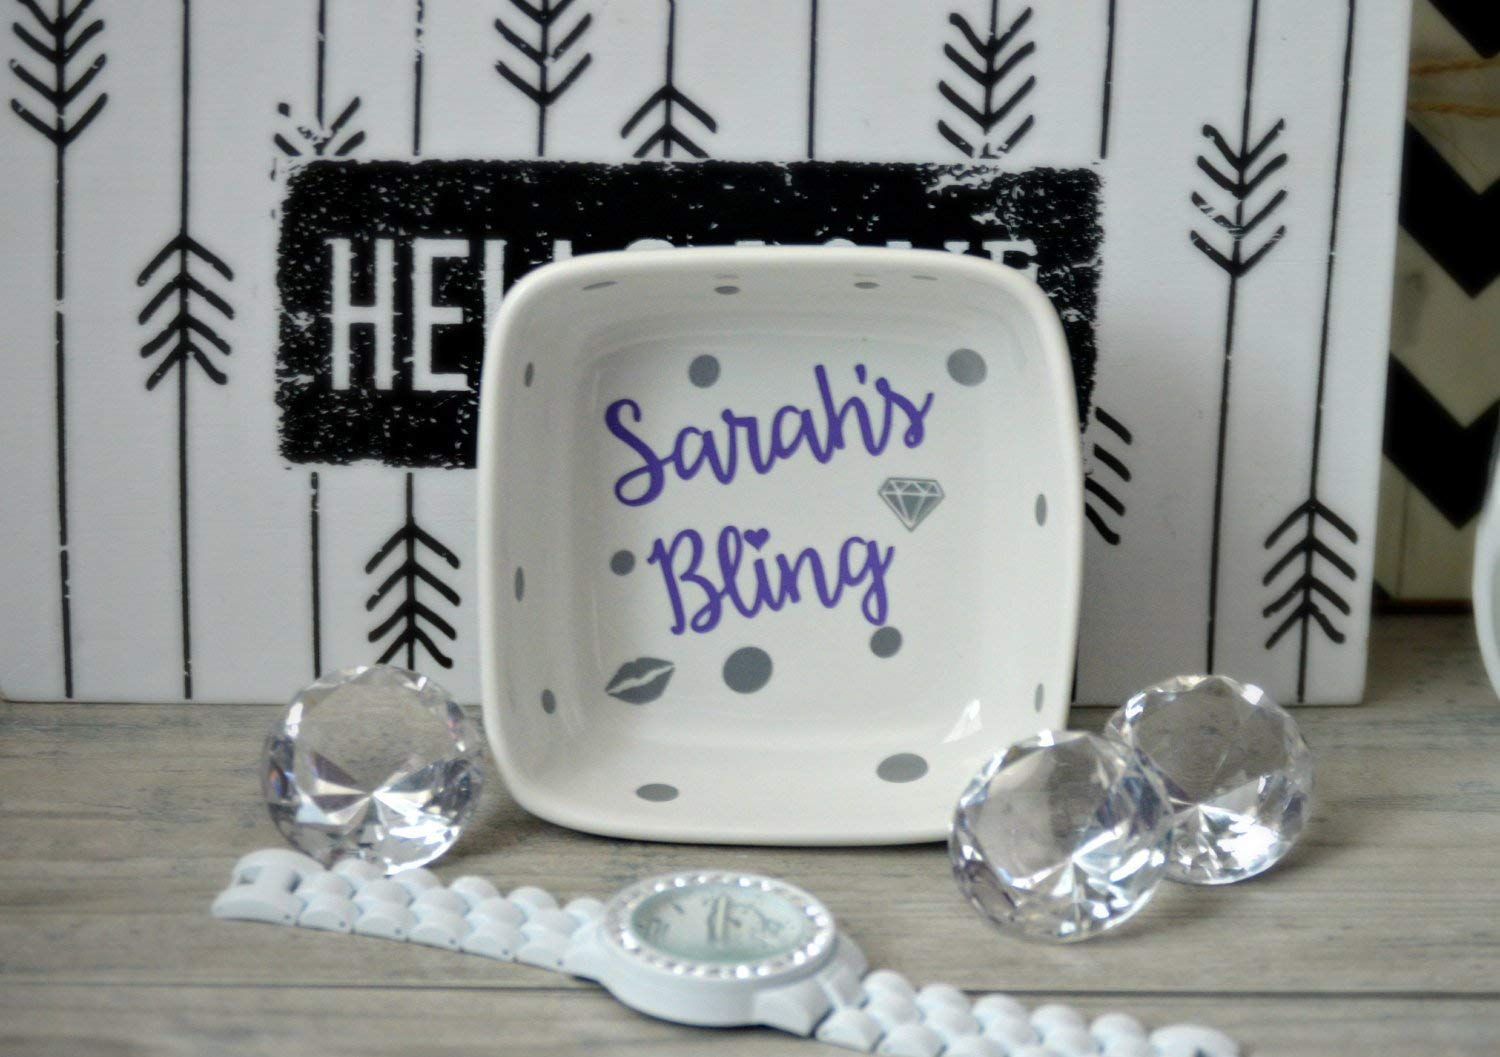 Jewelry Ring Dish, Jewelry Dish,Engagement Gift, Engagement Ring Holder, Wedding Ring Dish, His and Hers Gift, Mr and Mrs Ring Dish